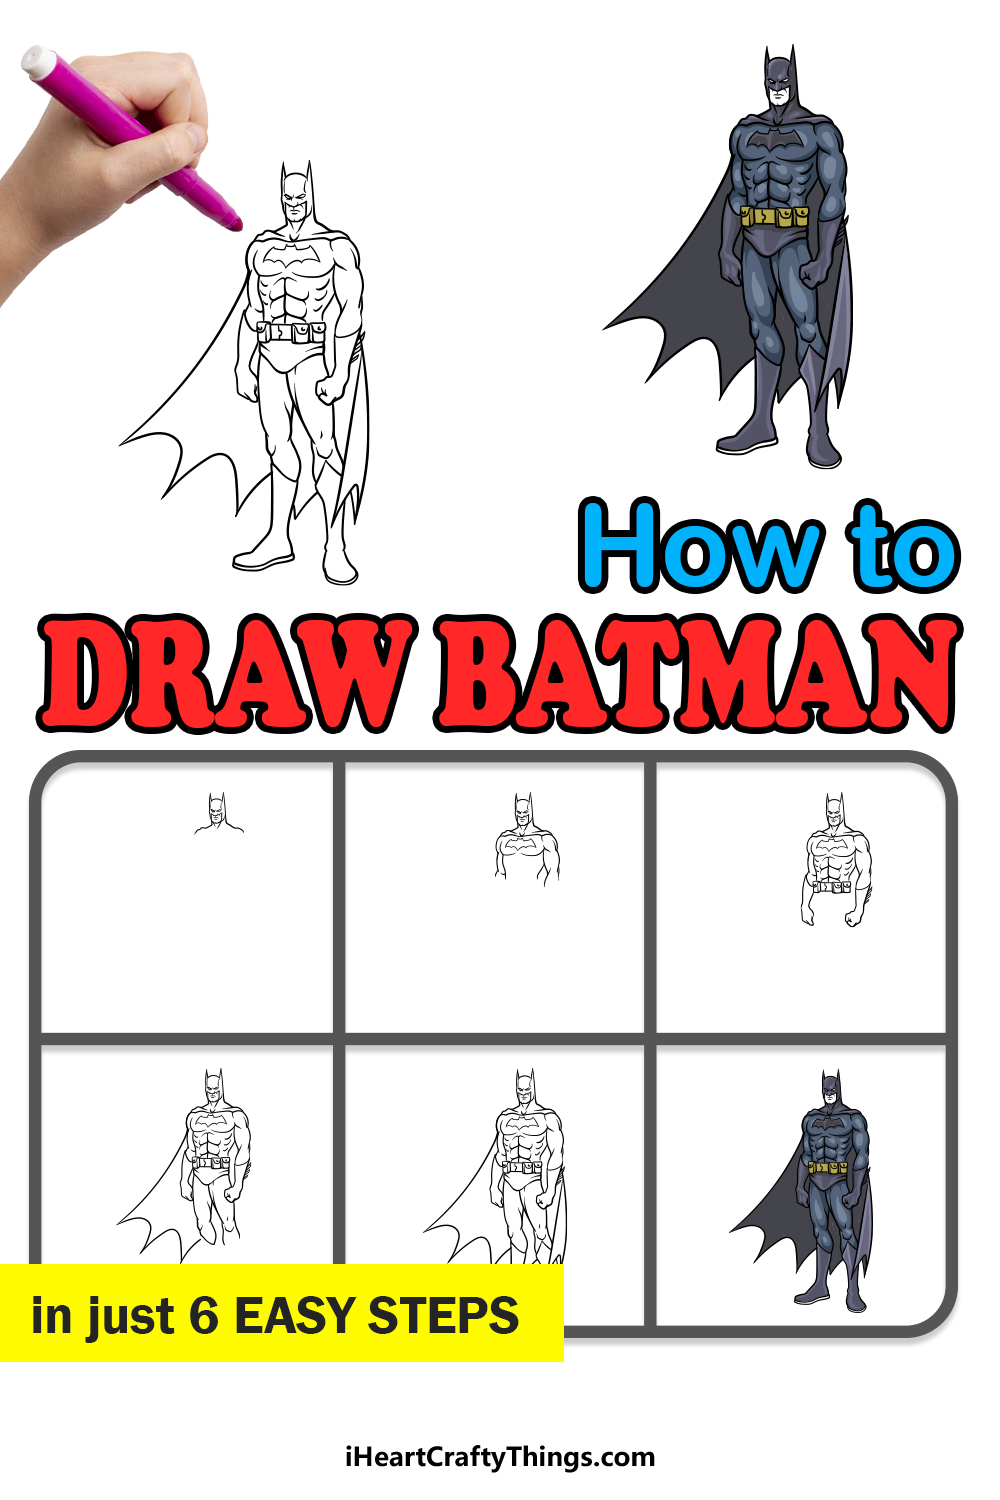 how to draw Batman in 6 easy steps